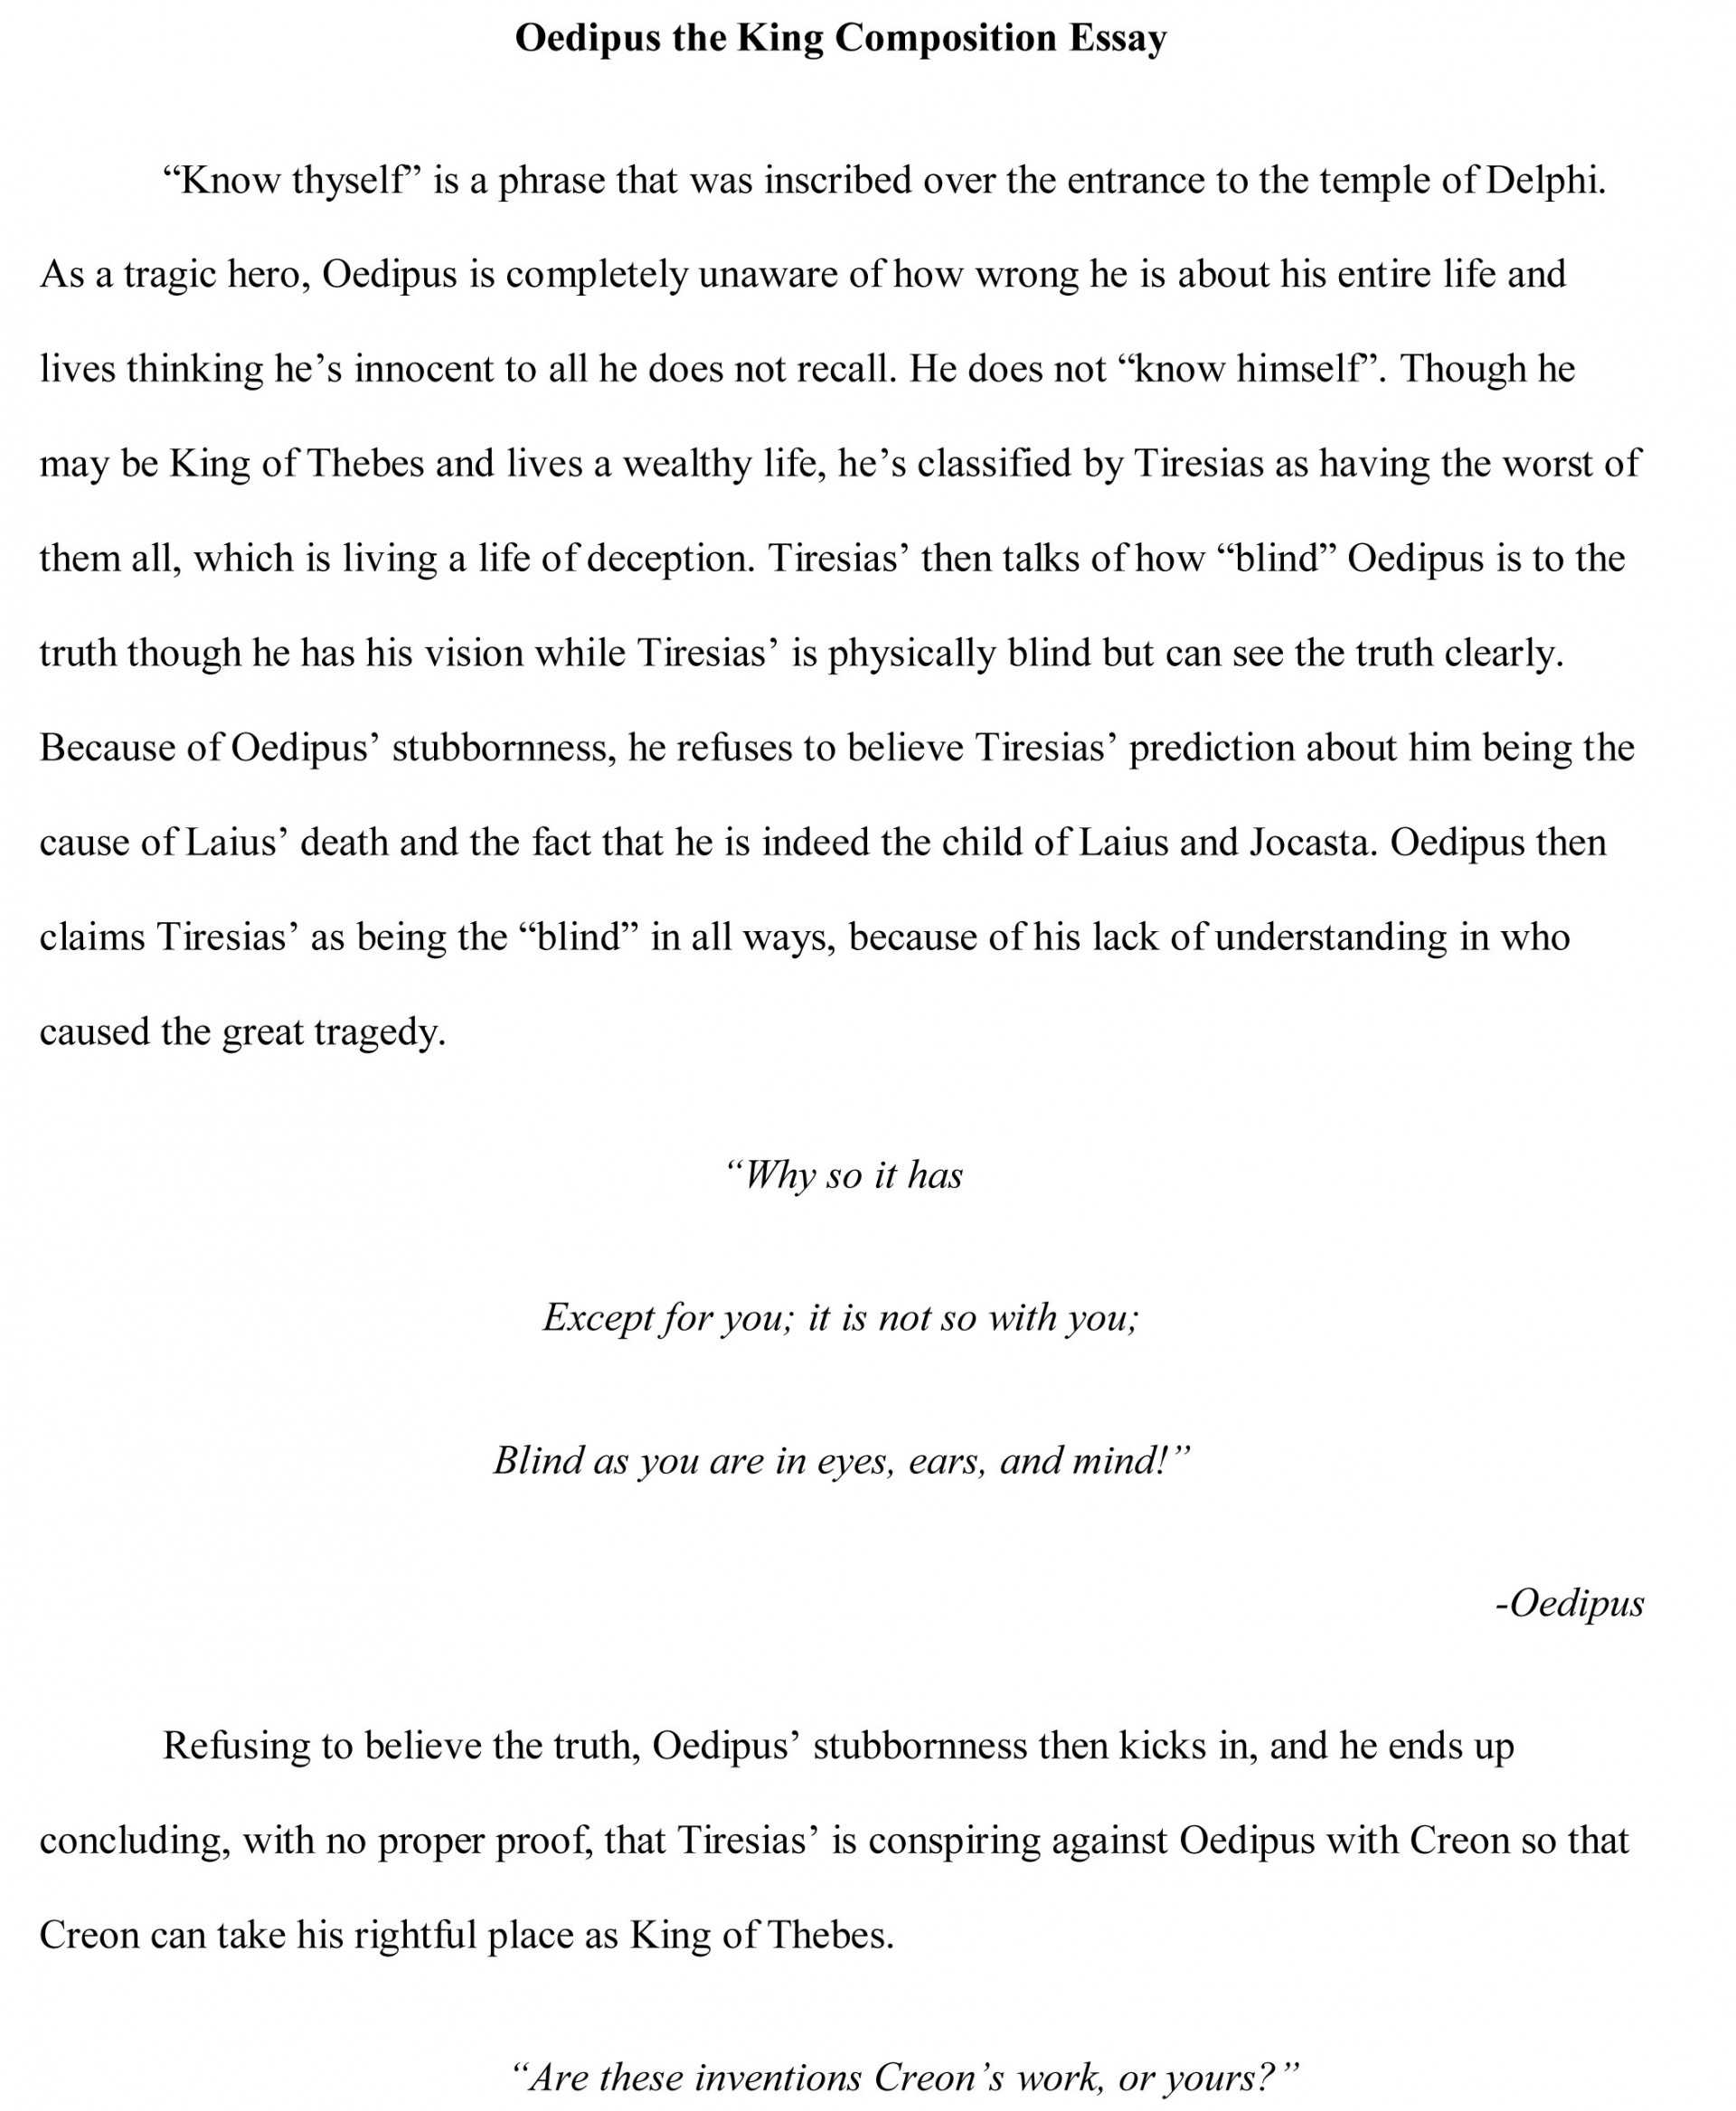 003 Essay Example Synthesis Paper Topic Ideas English For An Causal Argument Oedipus Free S Argumentative Rogerian Middle School Controversial Sentence College Students Good Best Topics High Outline Format On Immigration 1920